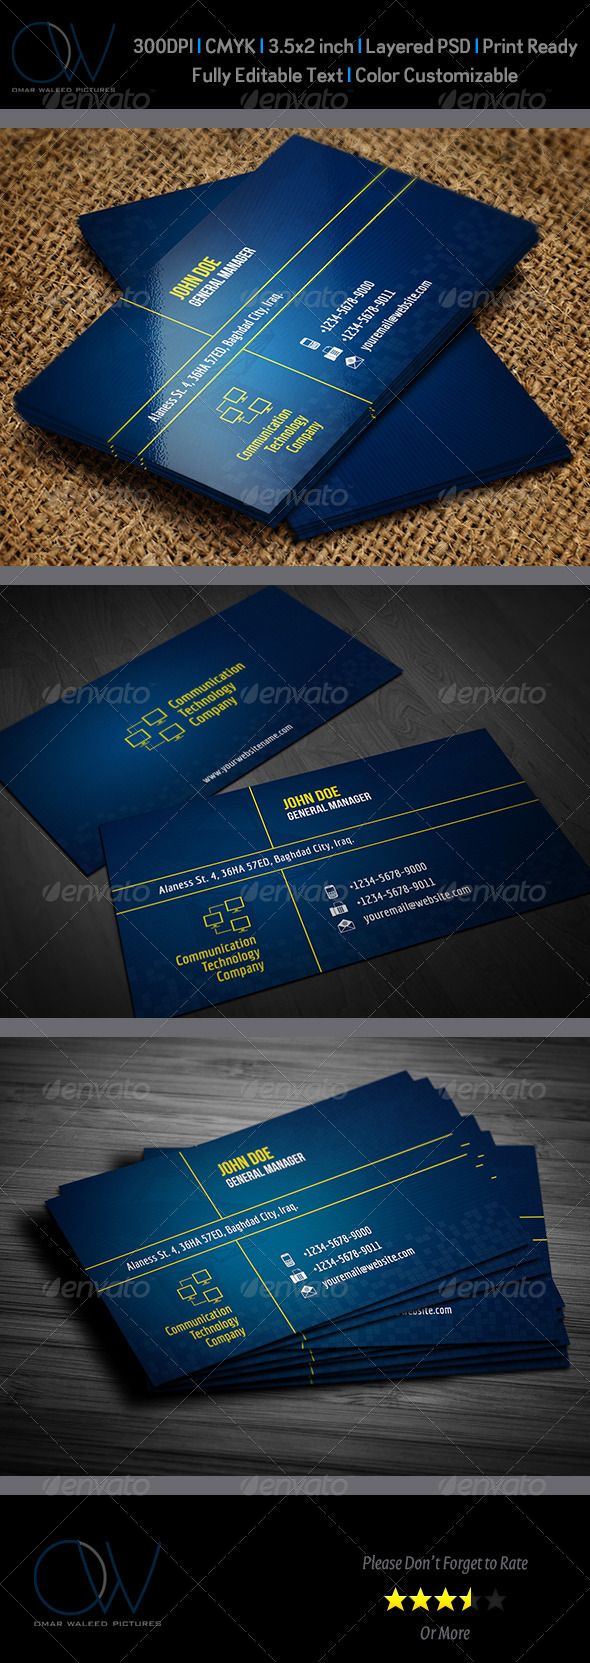 GraphicRiver Communication Technology Business Card 3944851